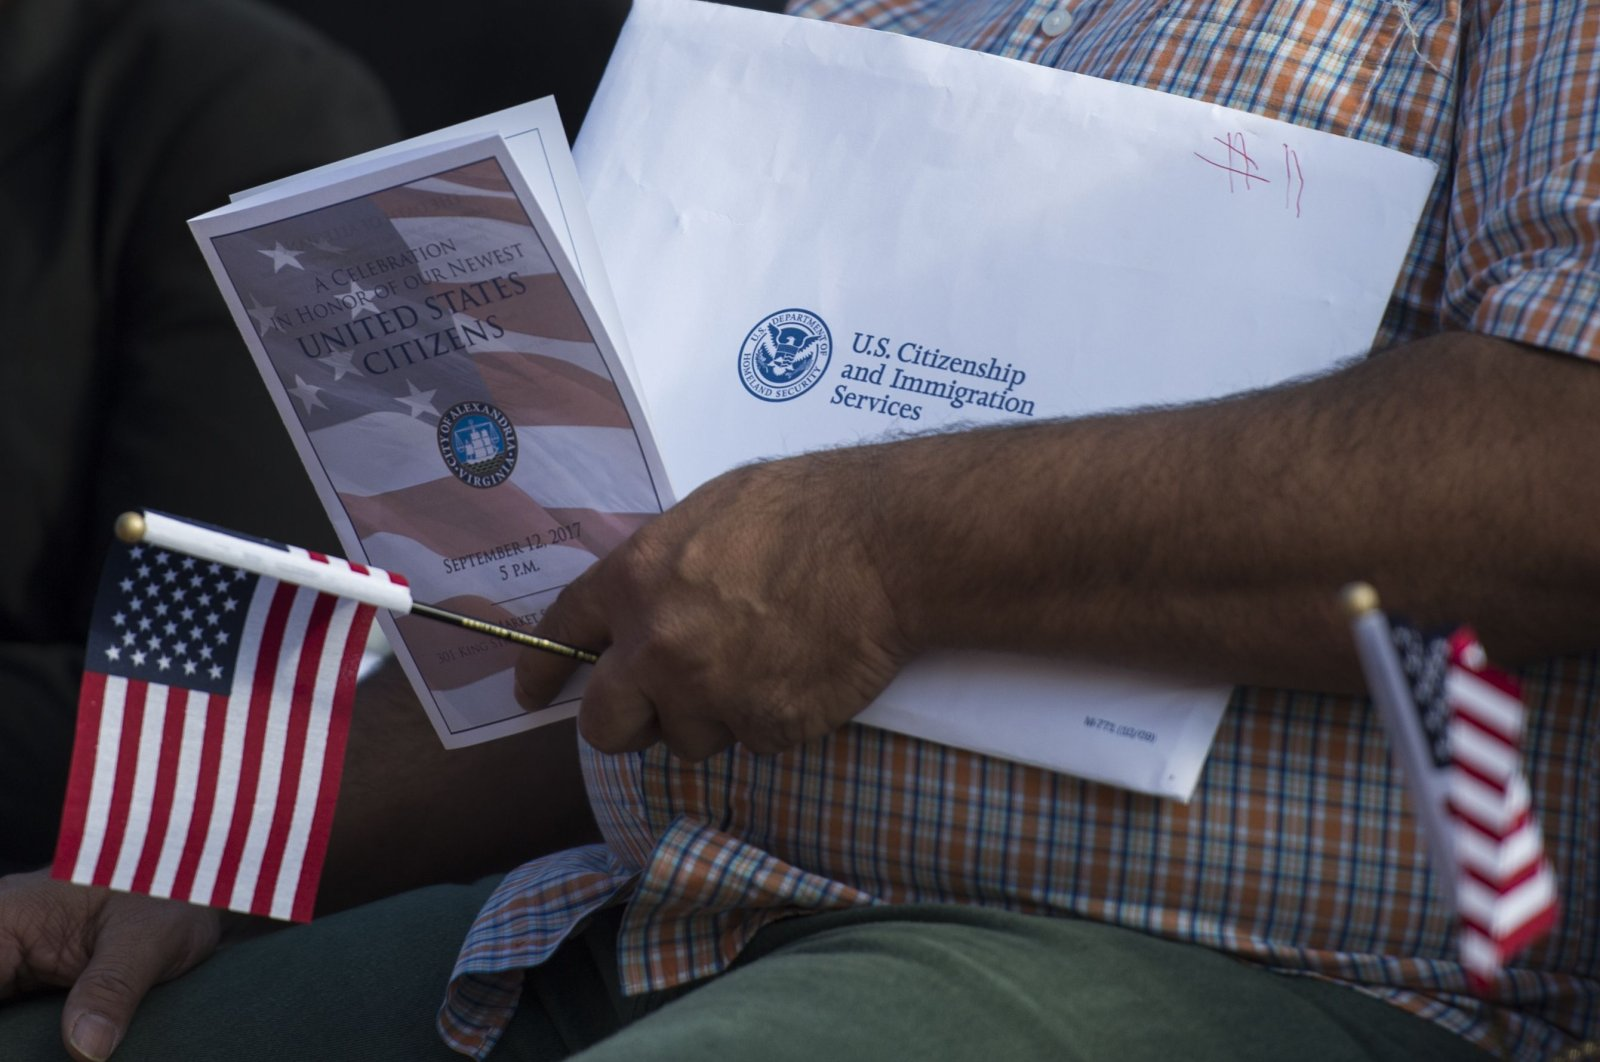 A new U.S. citizen holds an information packet at a naturalization ceremony at Alexandria City Hall in Alexandria, Va., Sept. 12, 2017. (AFP Photo)